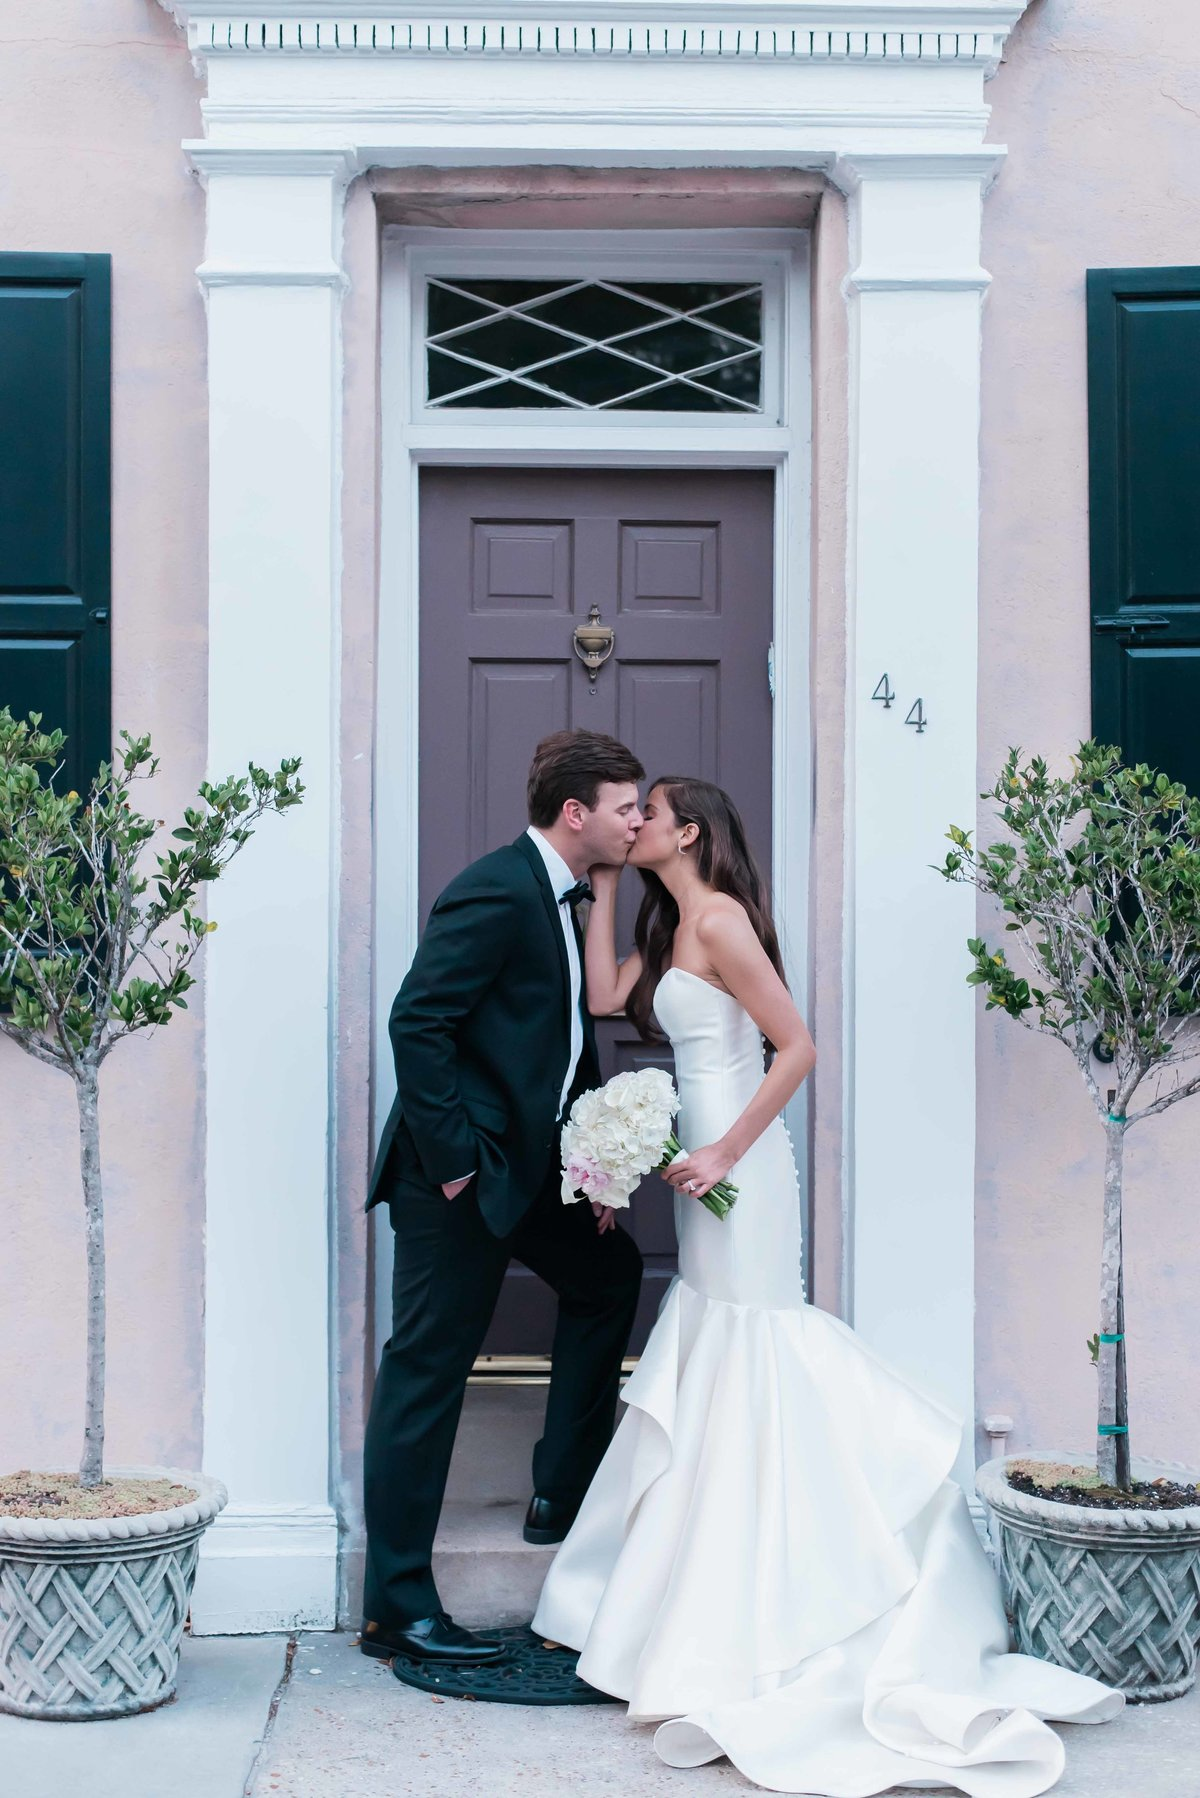 Bride and groom kiss in a traditional pink doorway in Charleston, SC